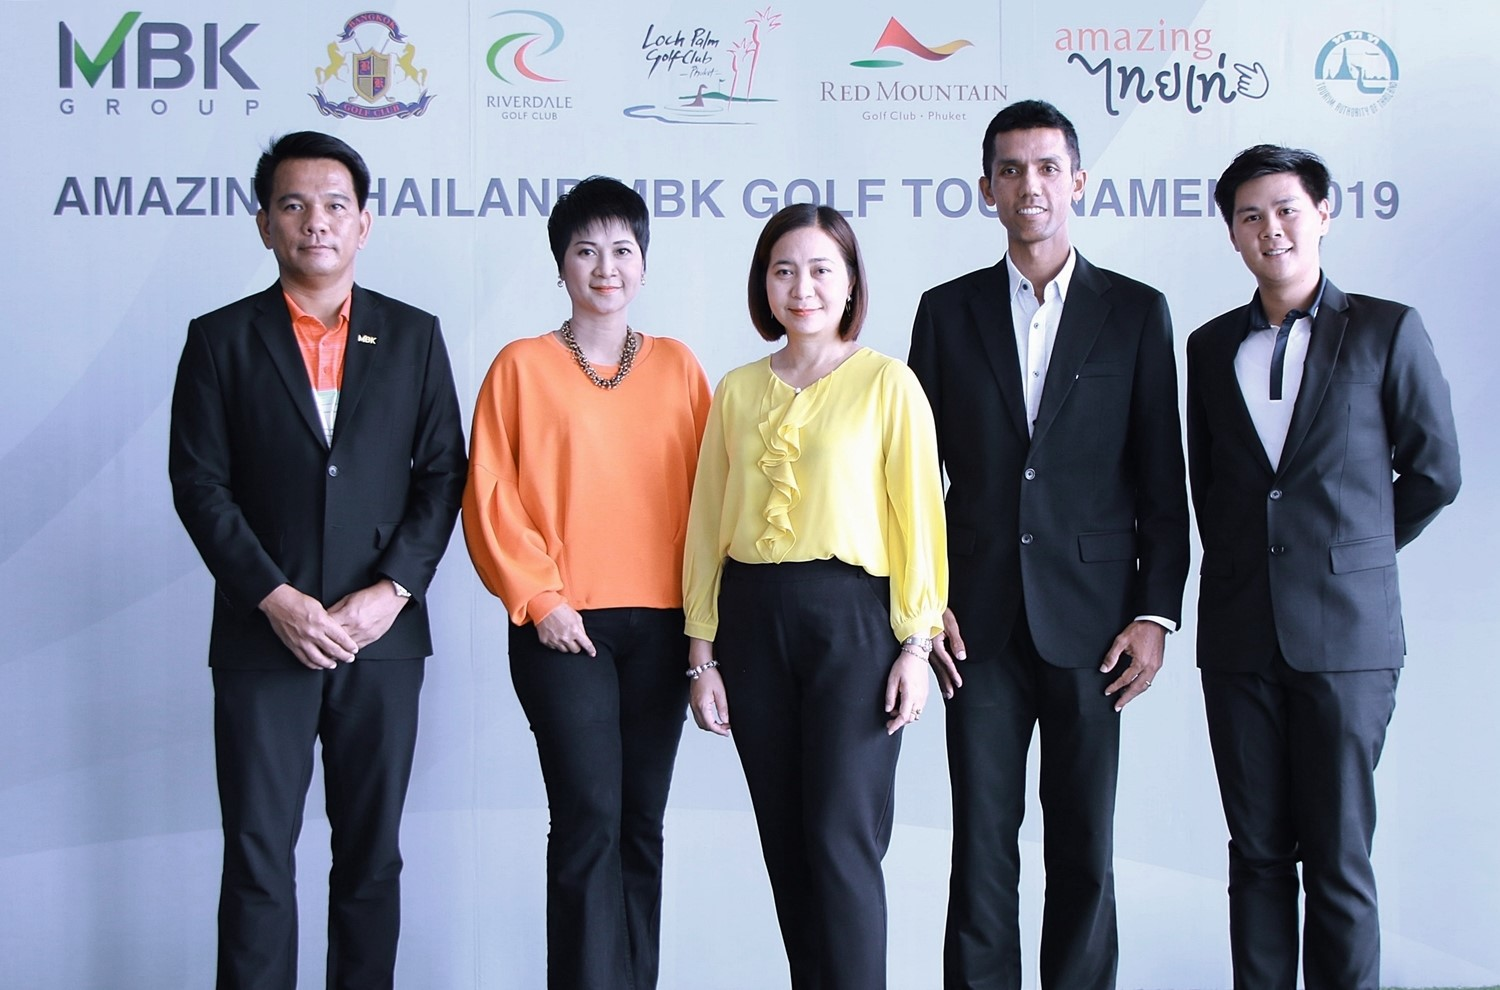 Amazing Thailand - MBK Golf Tournament 2019